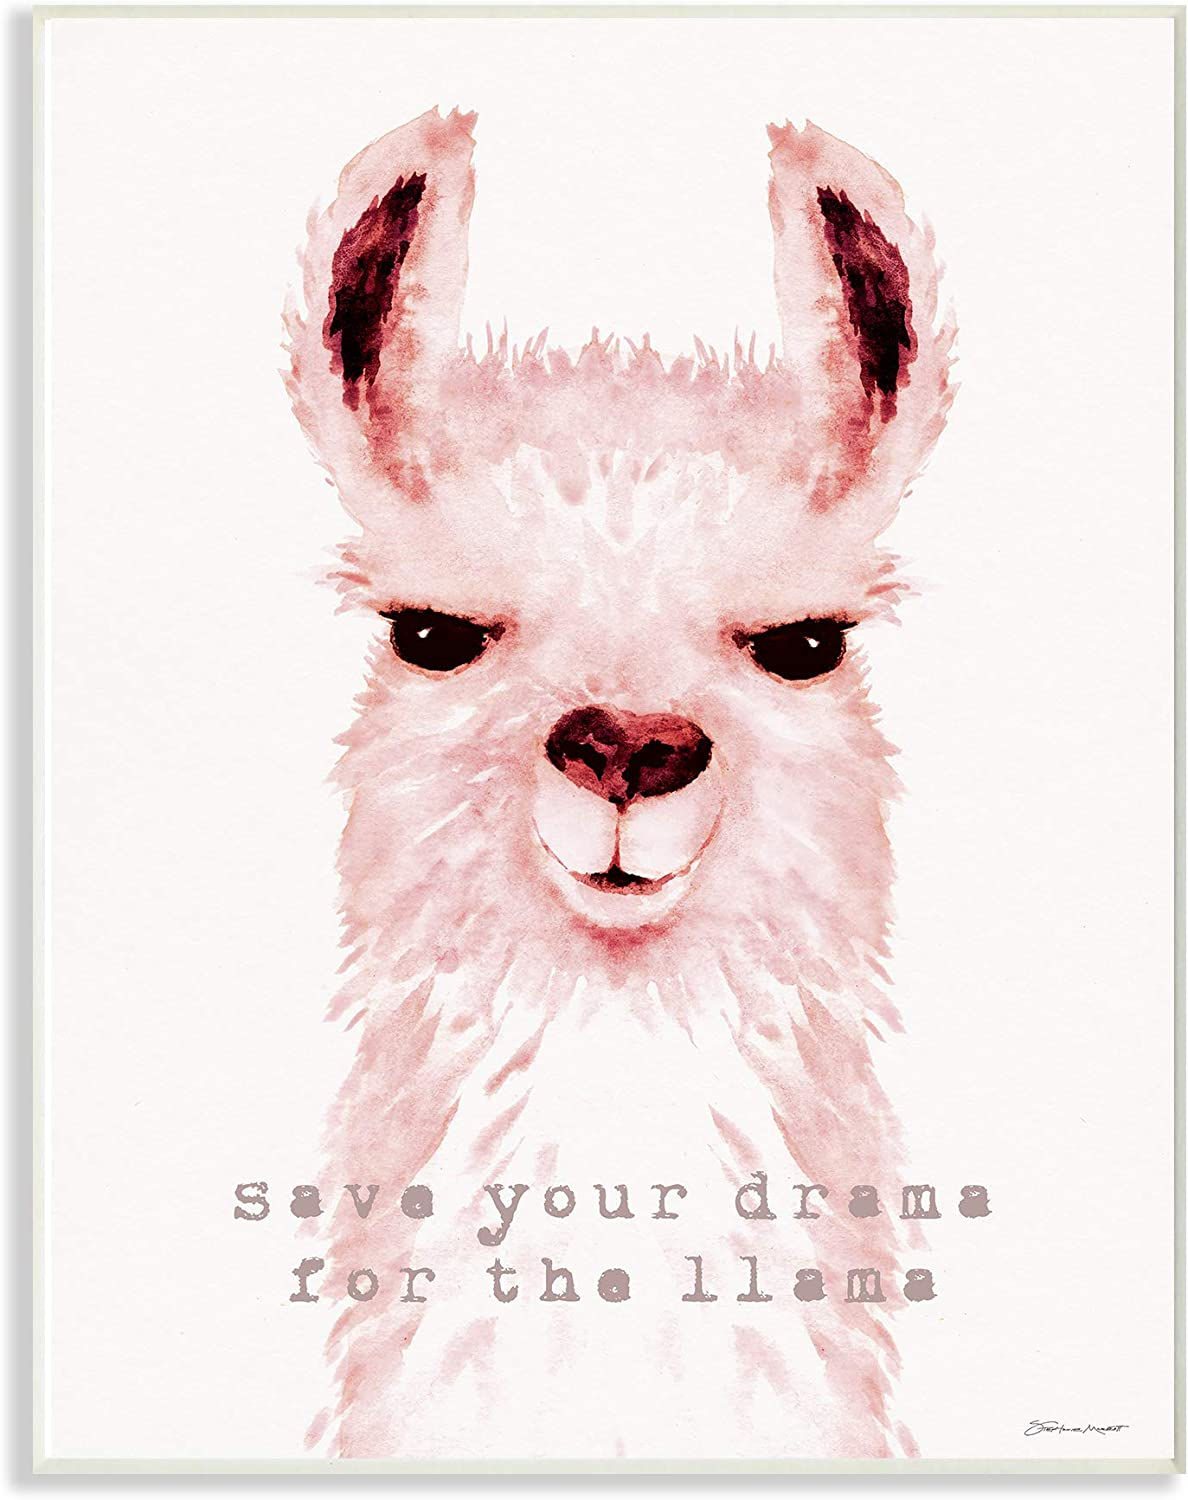 The Stupell Home Decor Save Your Drama Pink Watercolor Llama Wall Plaque Art, Multi-color